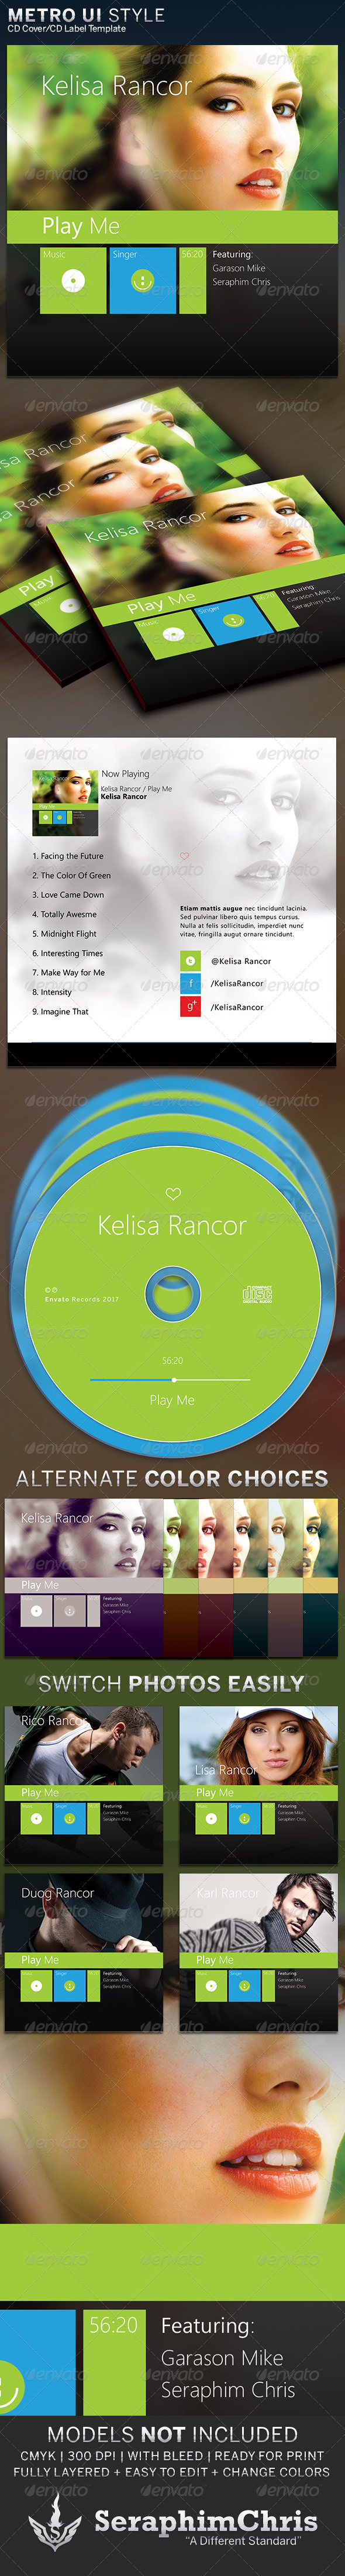 GraphicRiver Metro UI Style CD Cover Artwork Template 6374318